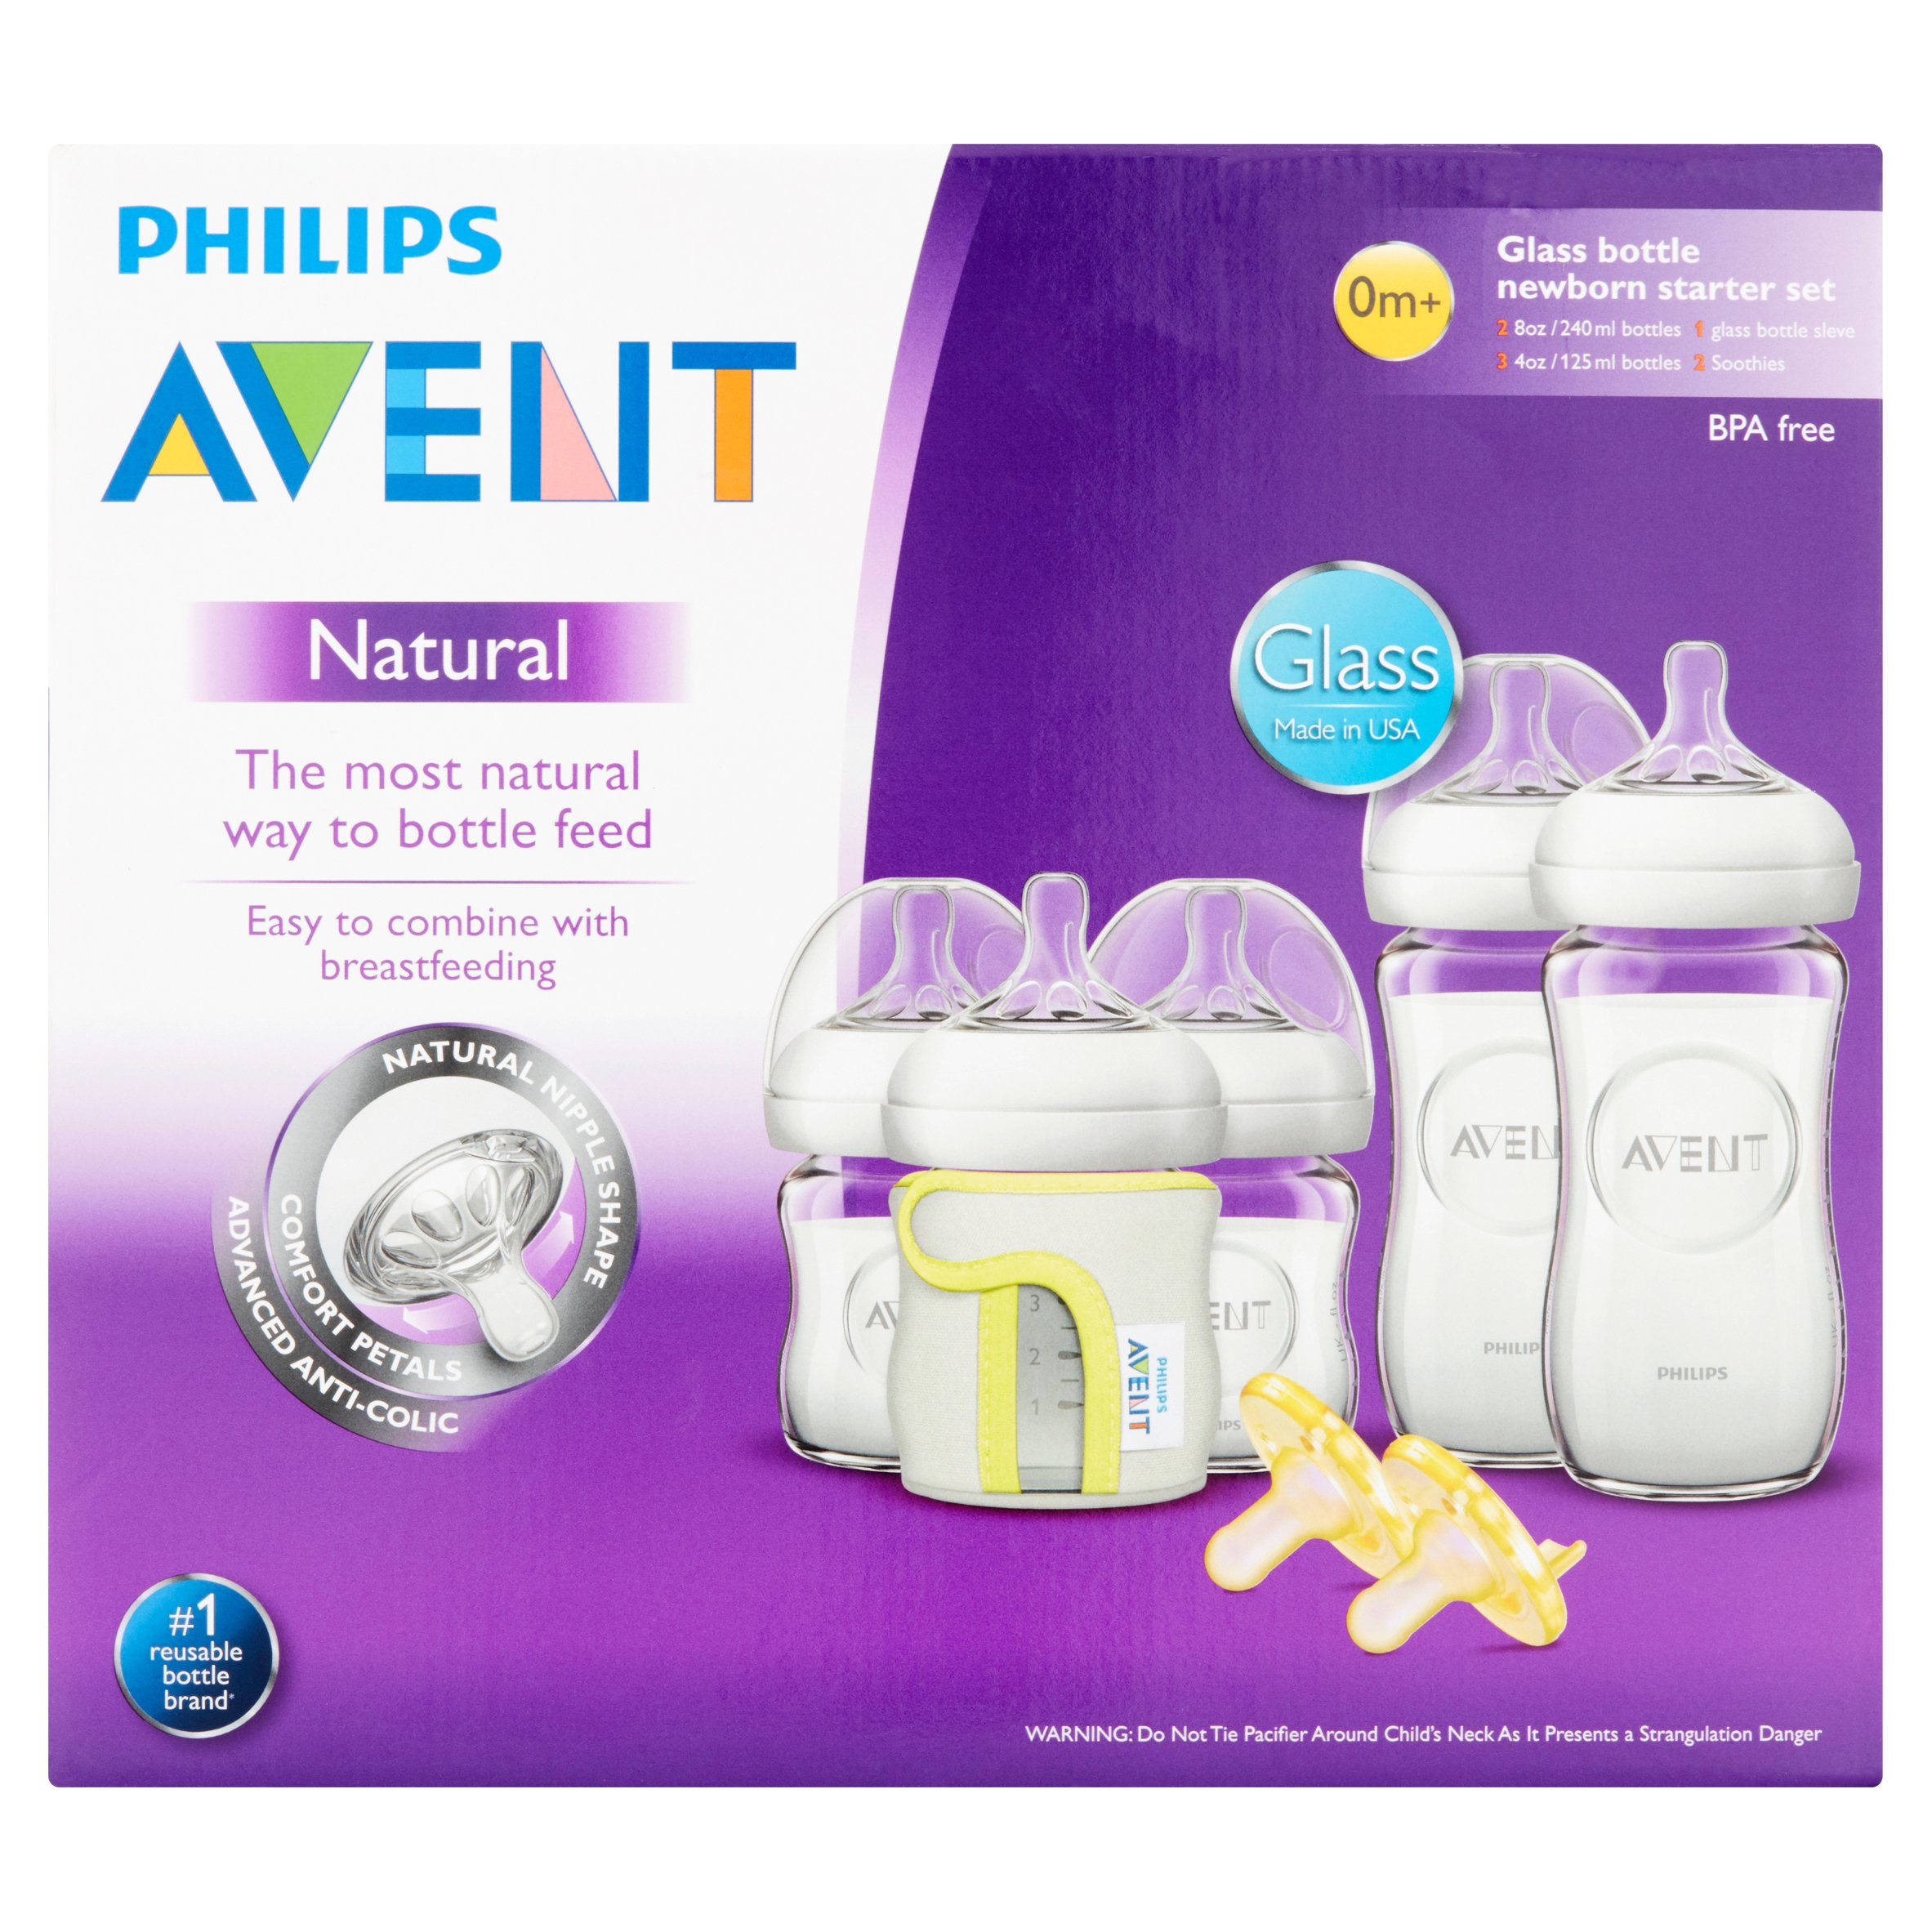 Philips Consumer Lifestyle, a Division of Philips Electronics North America Corporation Philips Avent Natural Glass Baby Bottle Newborn Starter Set, BPA - Free